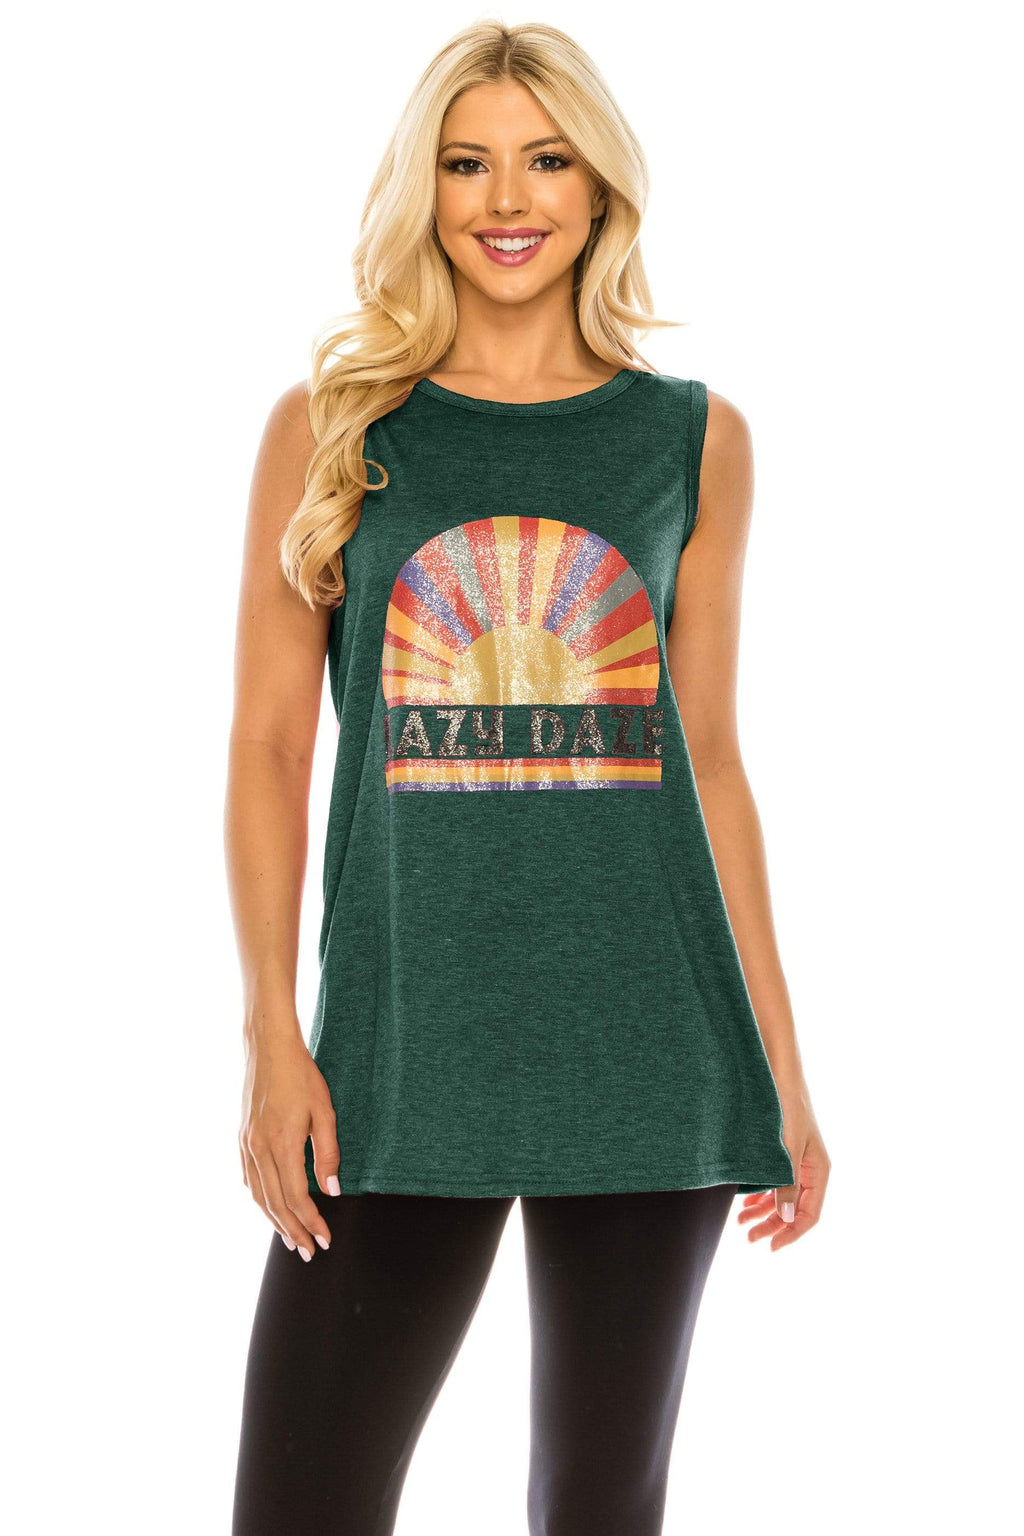 Haute Edition WOMEN'S TOP SEA GREEN / S Haute Edition Women's Sunshine Loose Fit Tank top. Plus size available